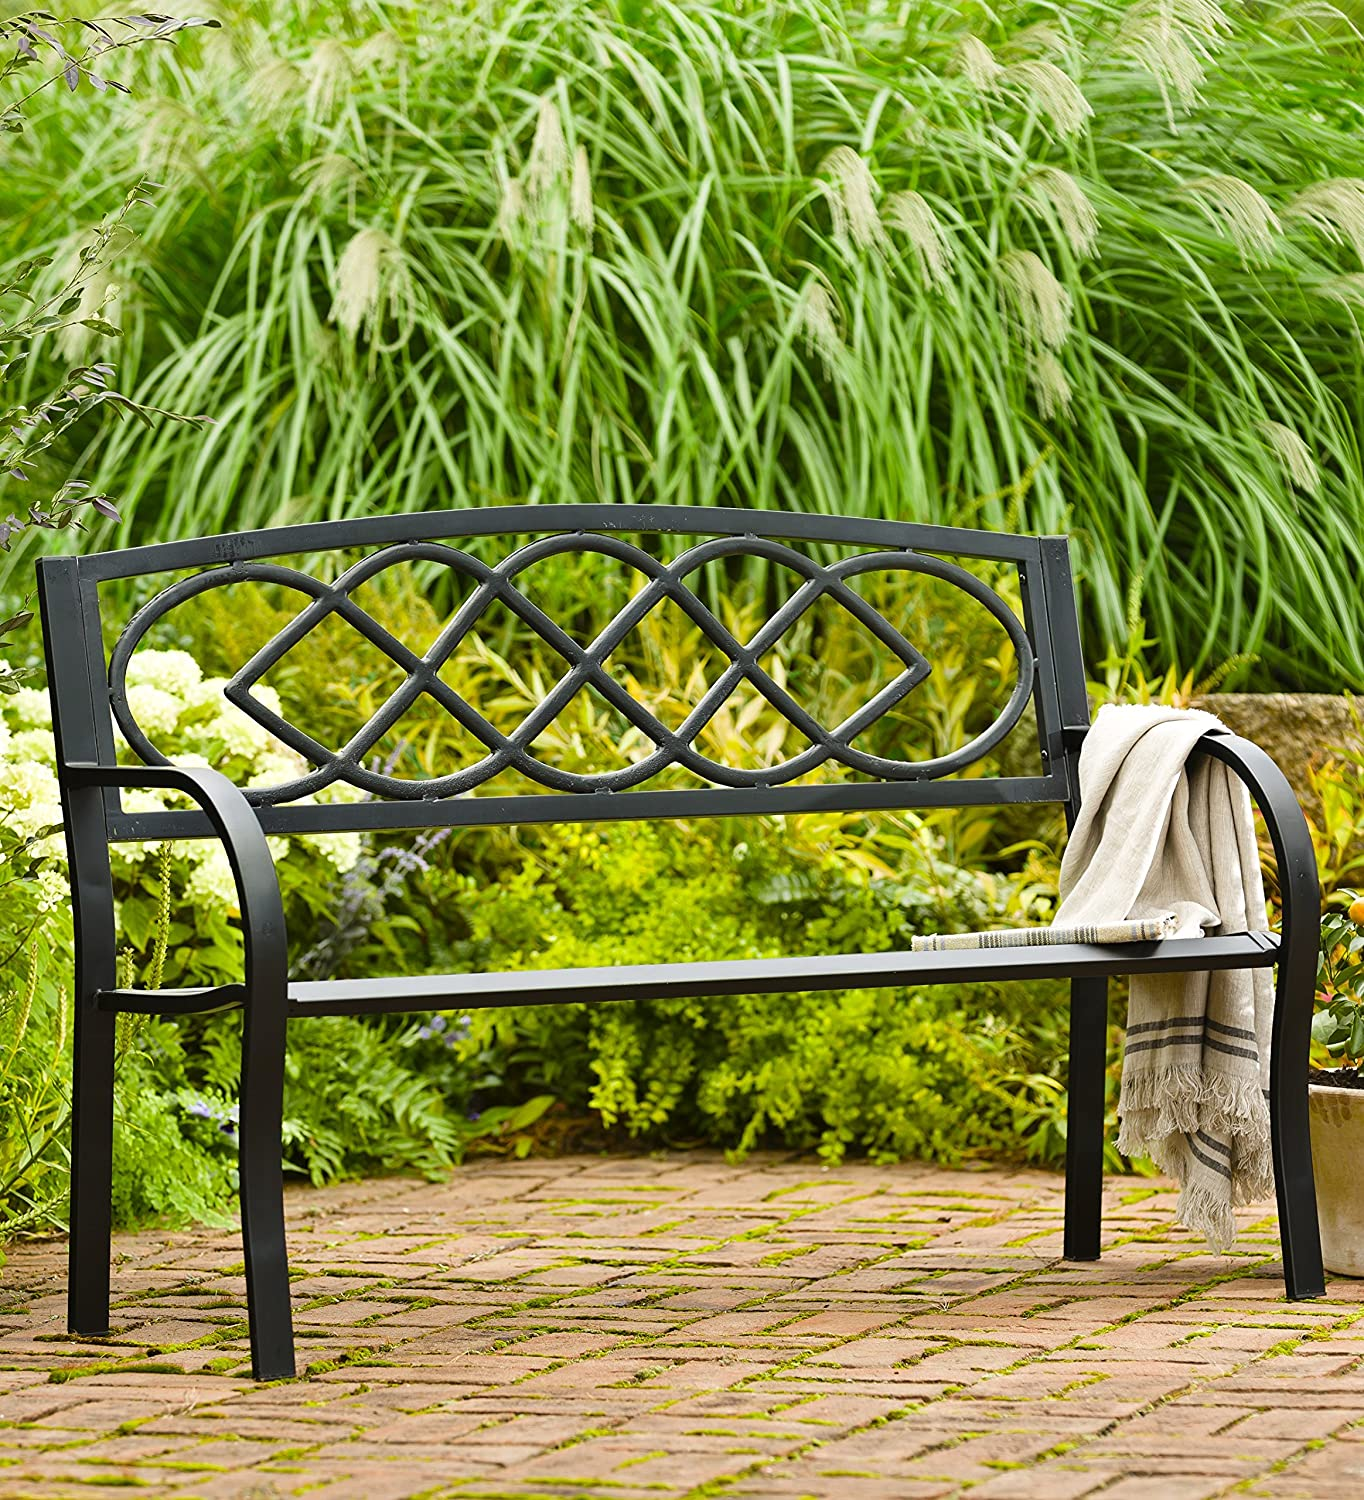 Amazon.com : Celtic Knot Patio Garden Bench Park Yard Outdoor Furniture,  Cast And Tubular Iron Metal, Powder Coat Black Finish, Classic Decorative  Design, ...